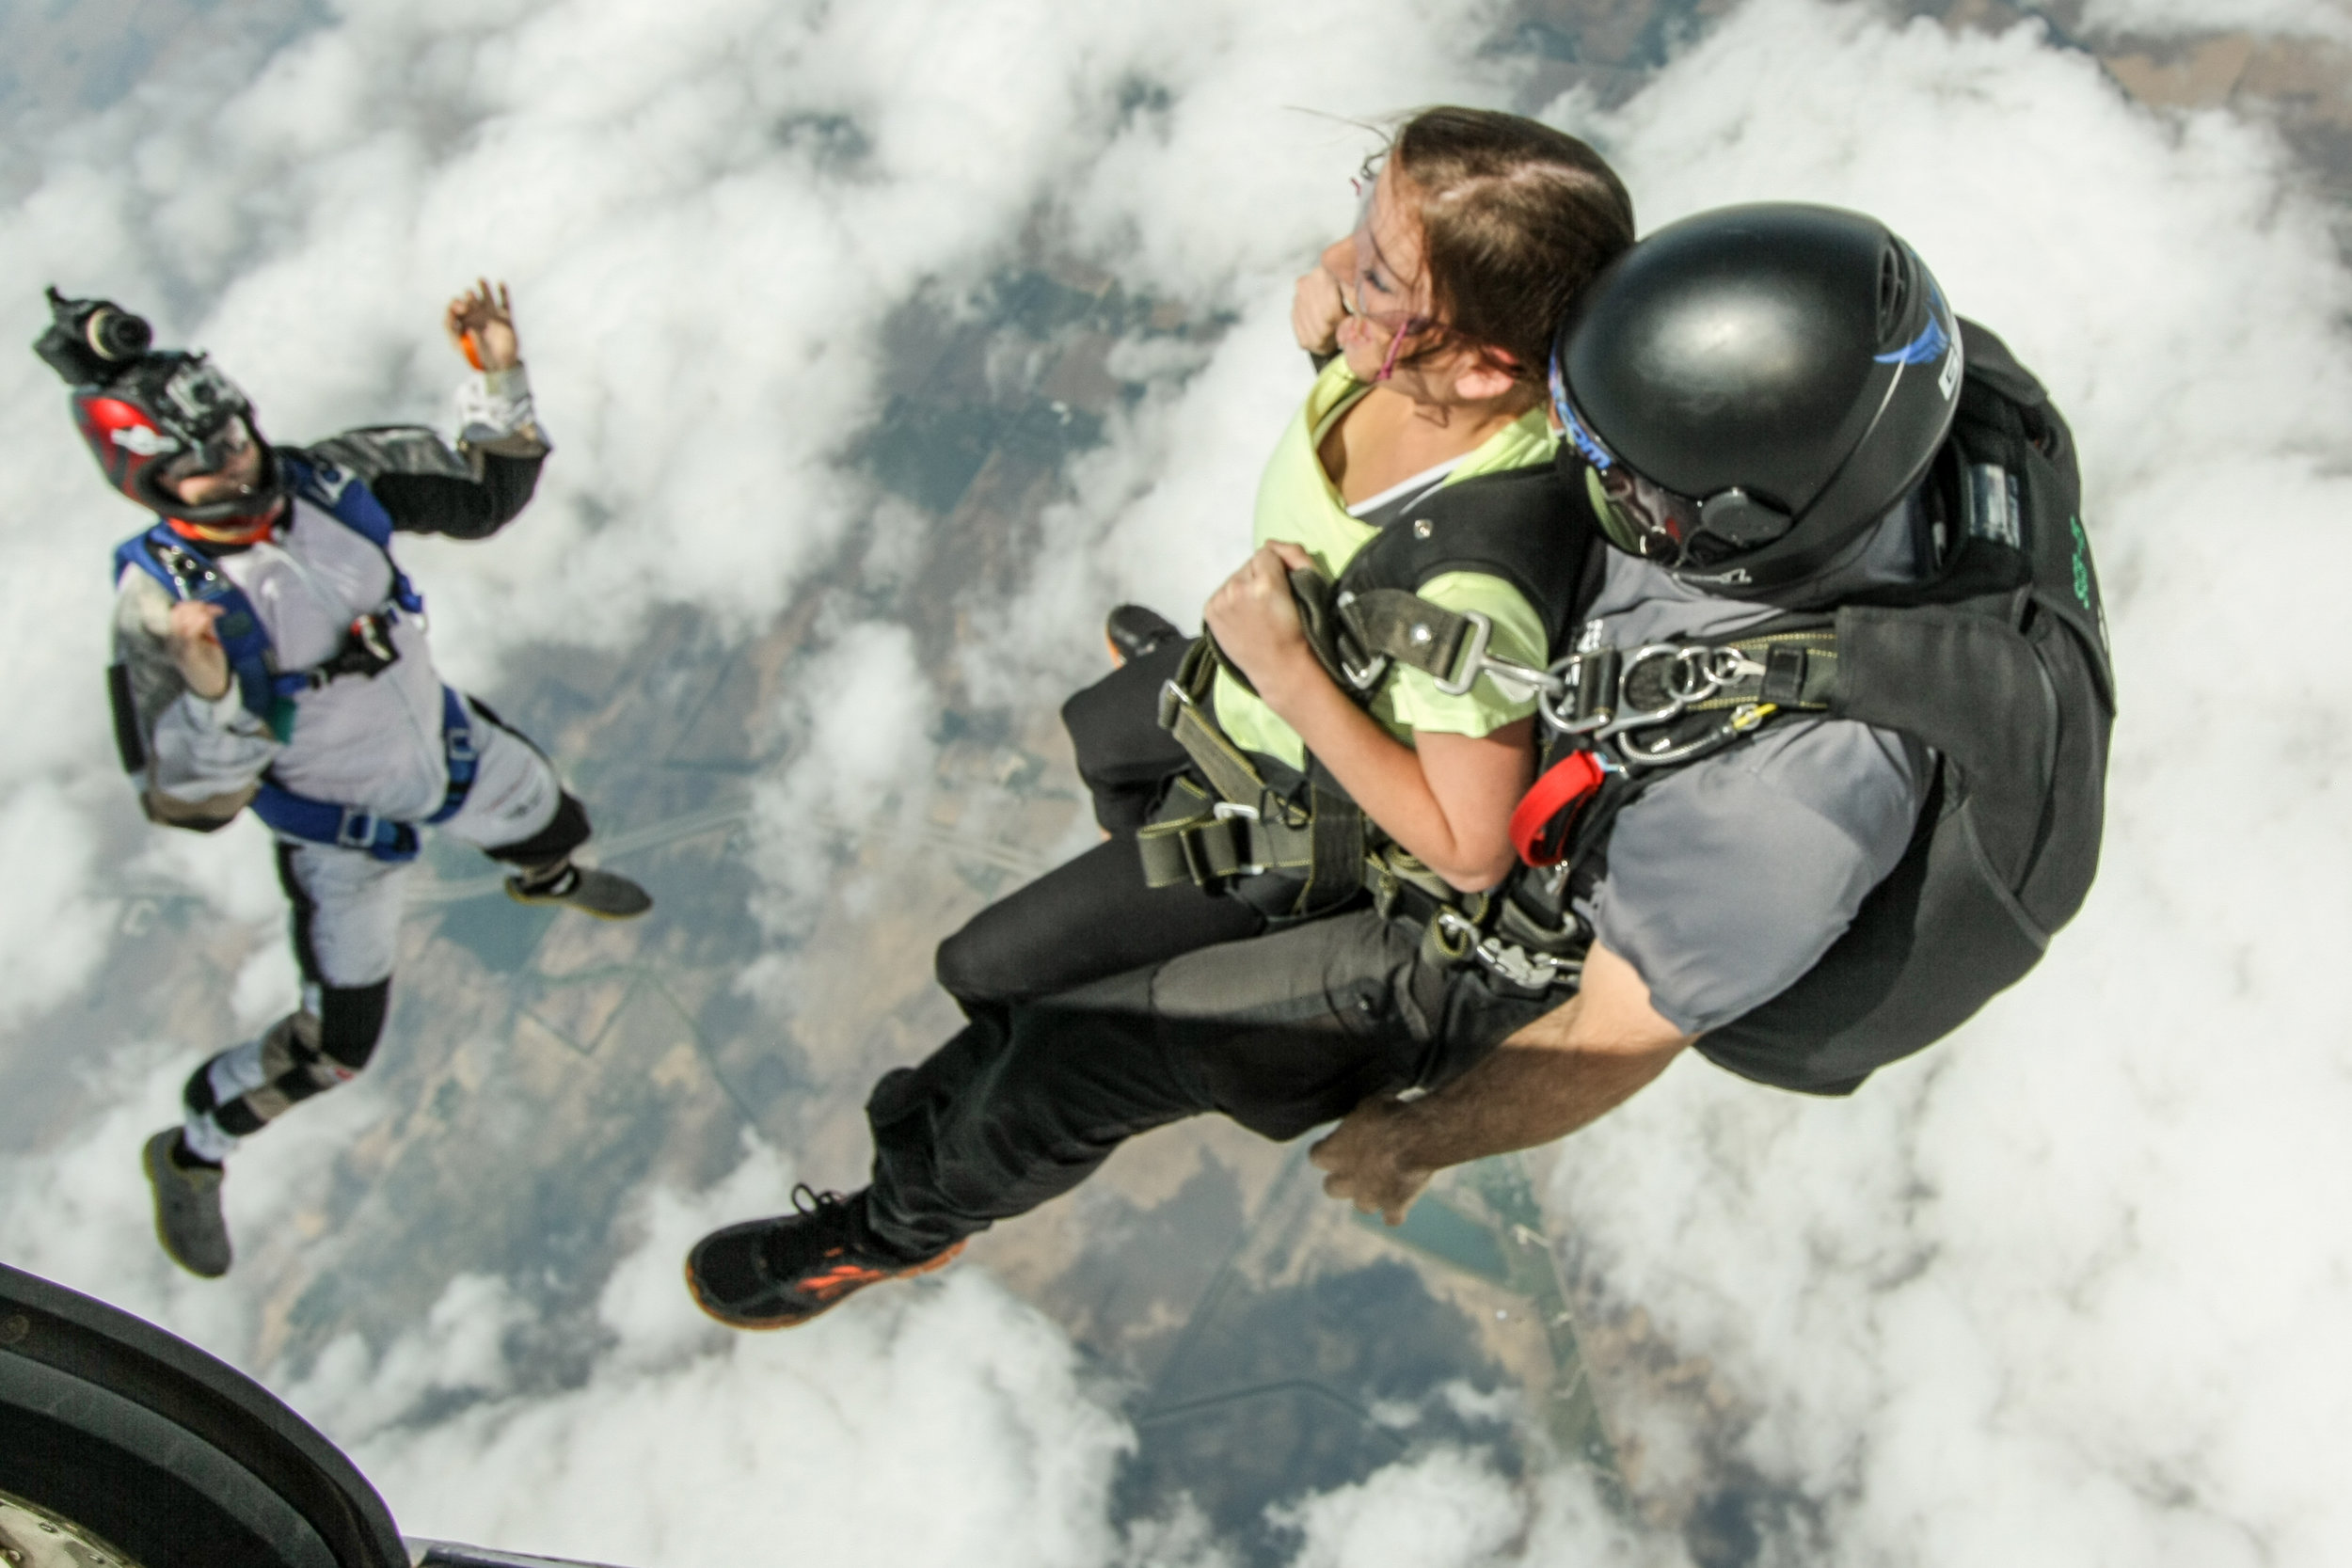 Skydive videographer captures exit.